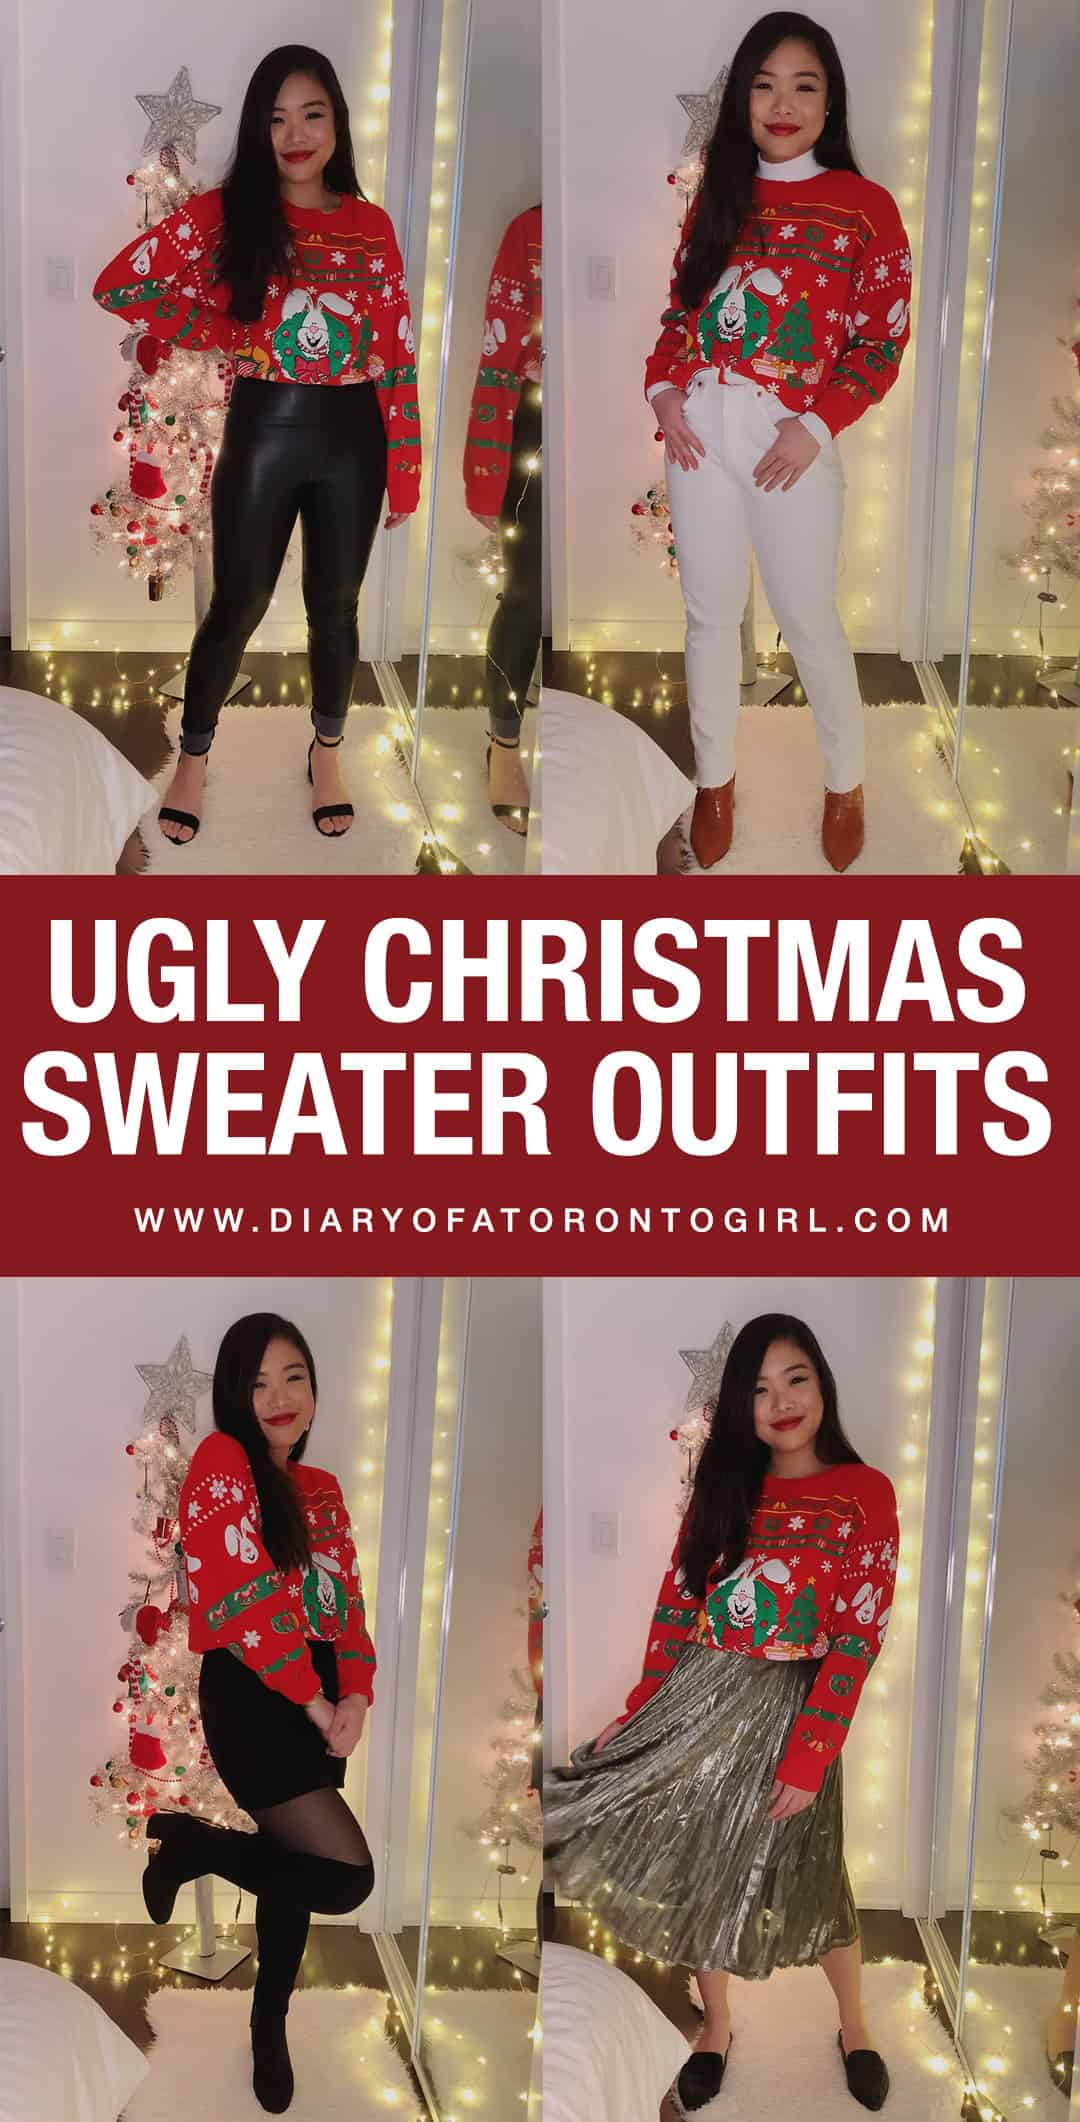 Ugly Christmas sweater outfit ideas to wear this holiday season if you're not sure how to style them!